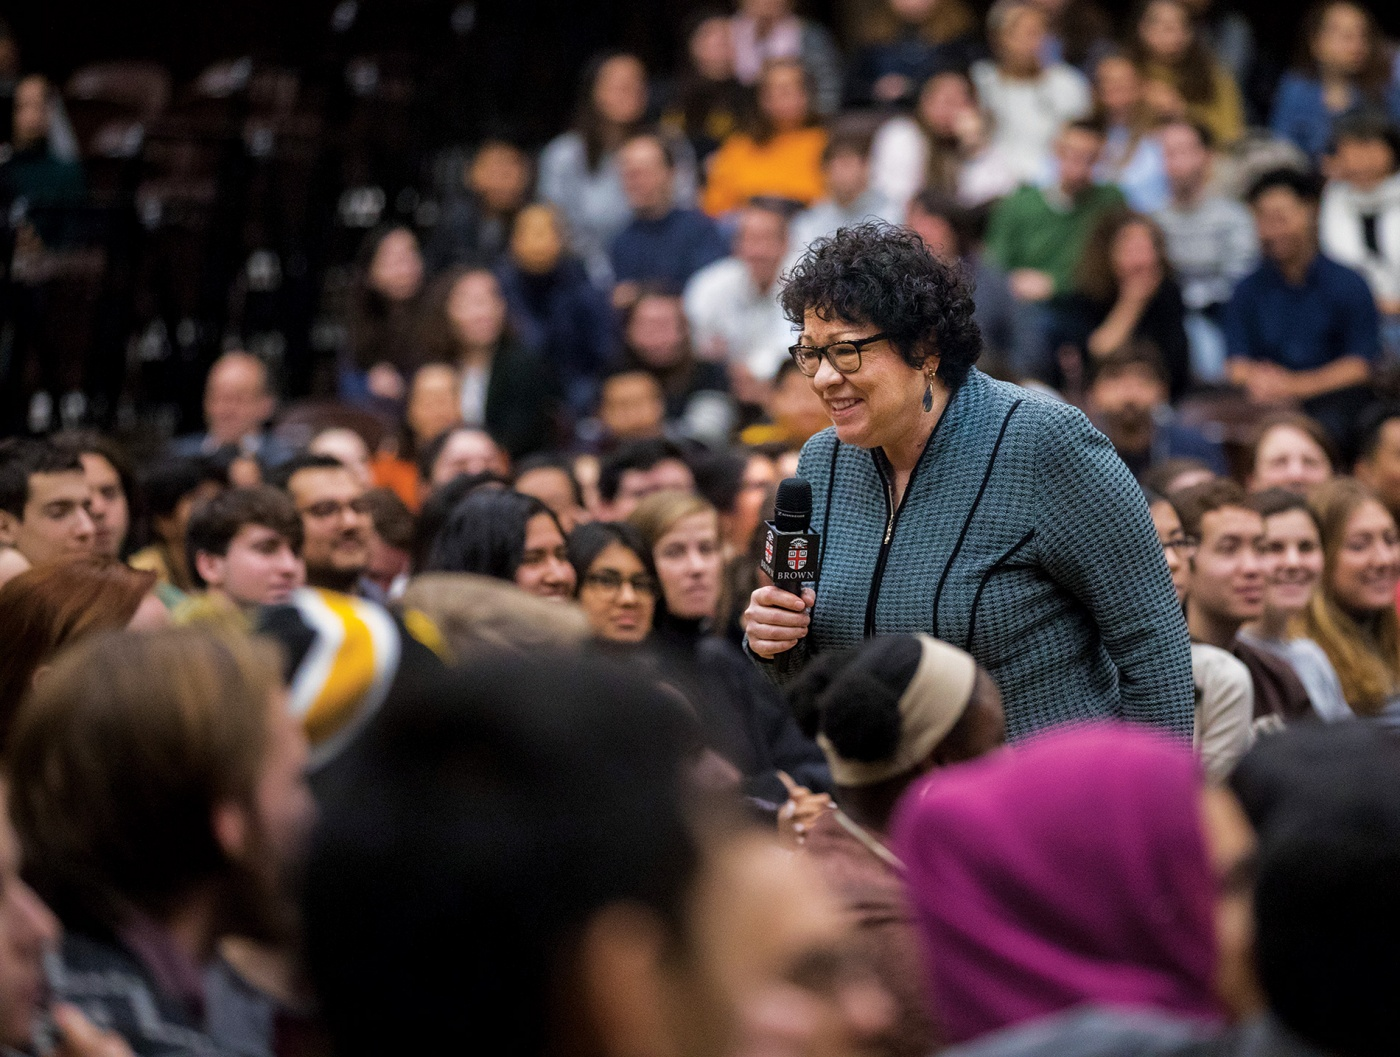 Justice Sonia Sotomayor walking among Brown students